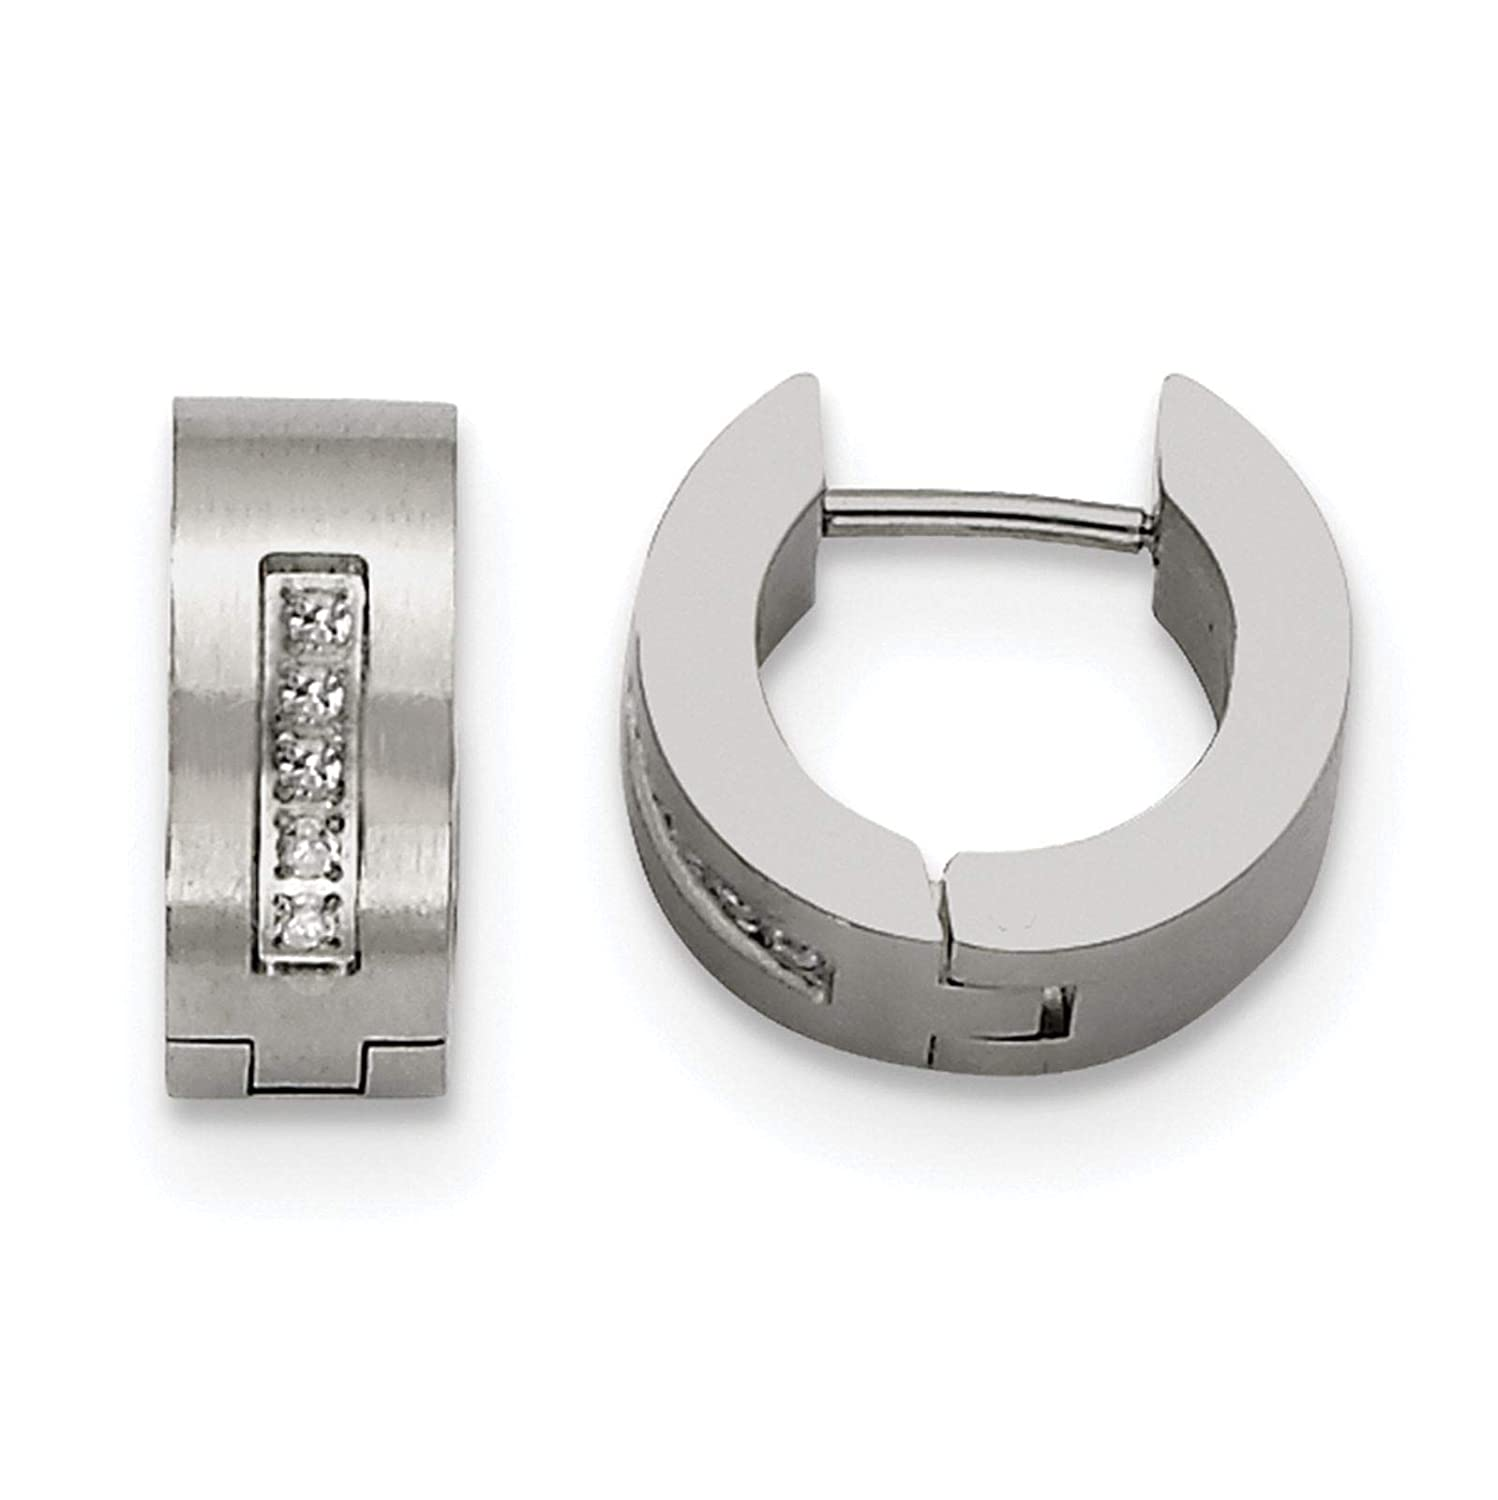 Stainless Steel Polished /& Brushed Finish w//CZ Huggie Hoop Earrings 5mm x 9mm